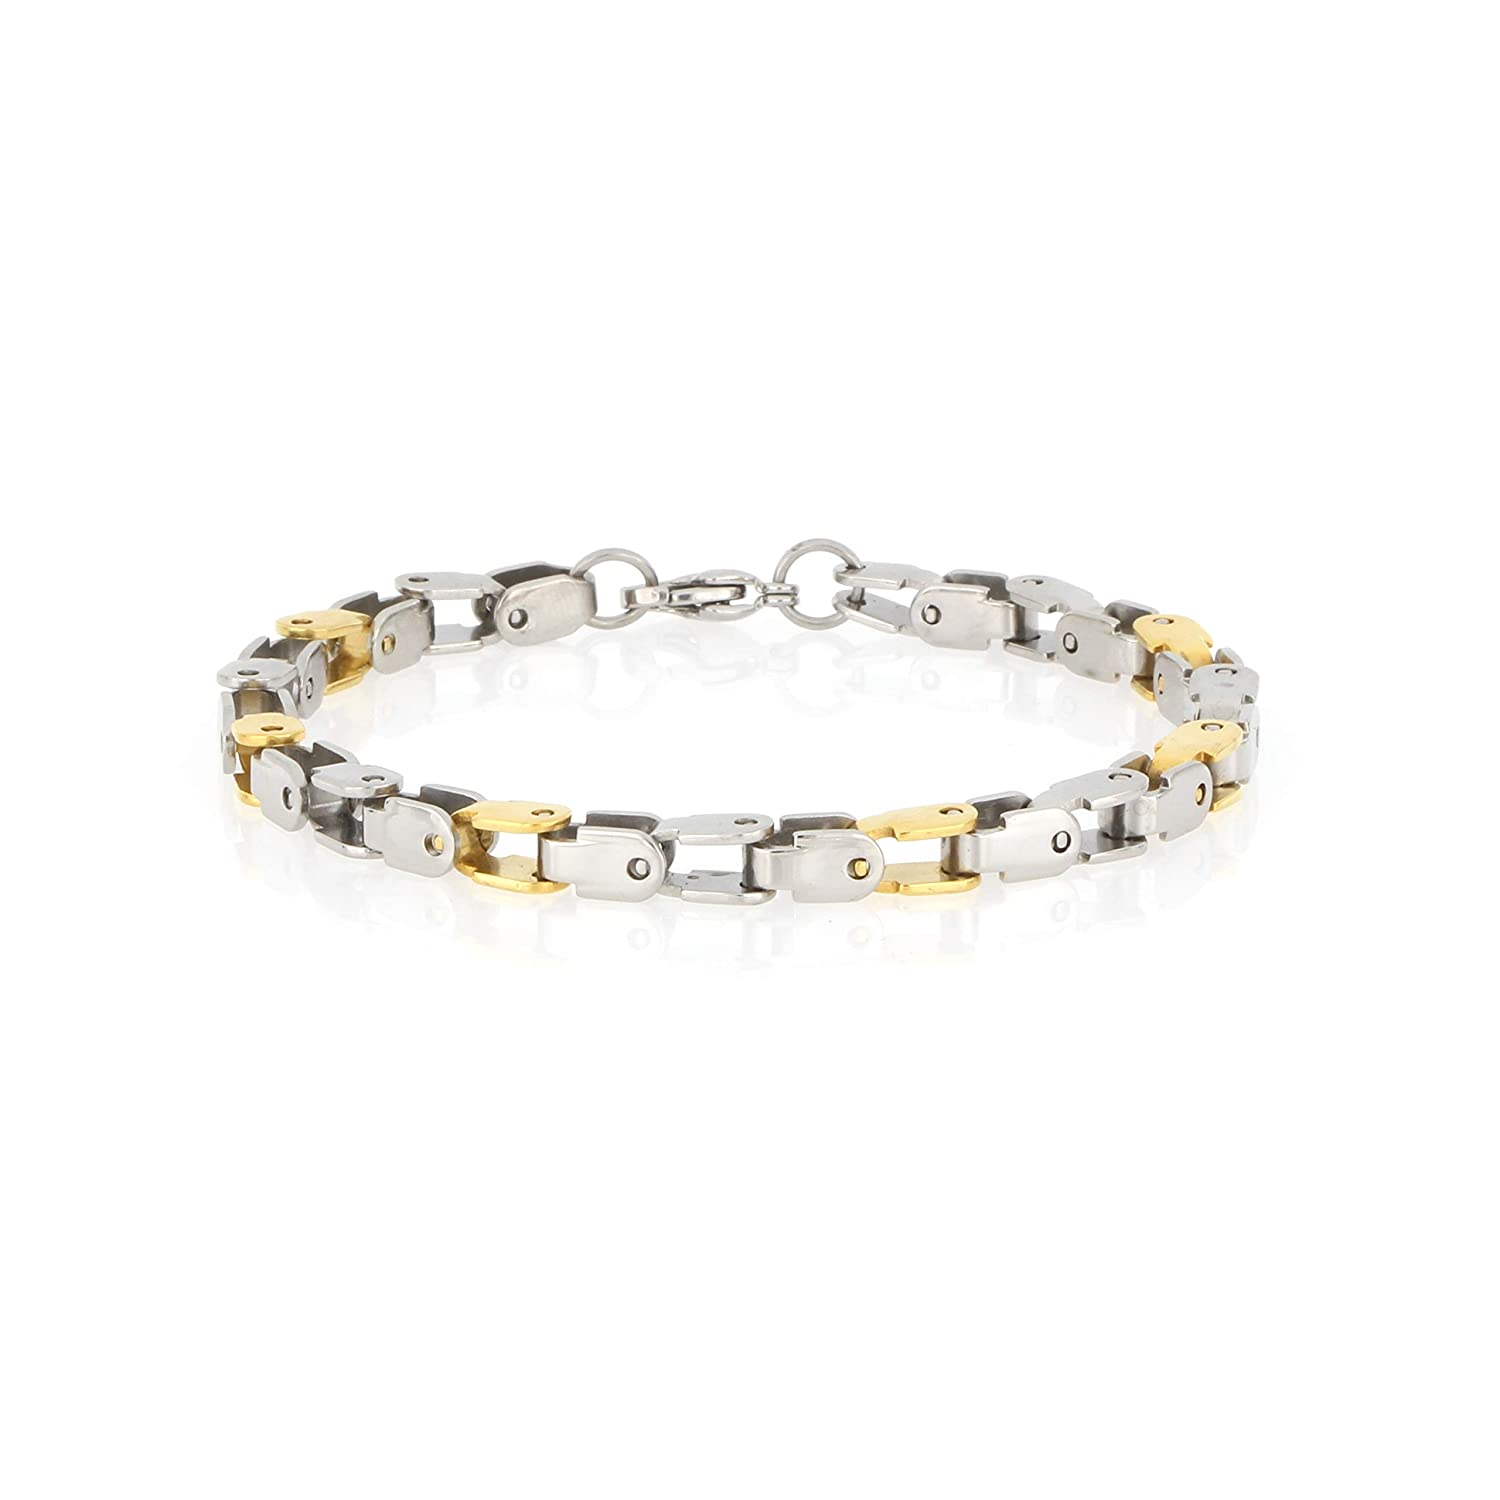 Arrow Jewelry Stainless Steel Two-Color Gold-Tone IP-Plated Fancy Box Chain Bracelet Polished Finish 8.25